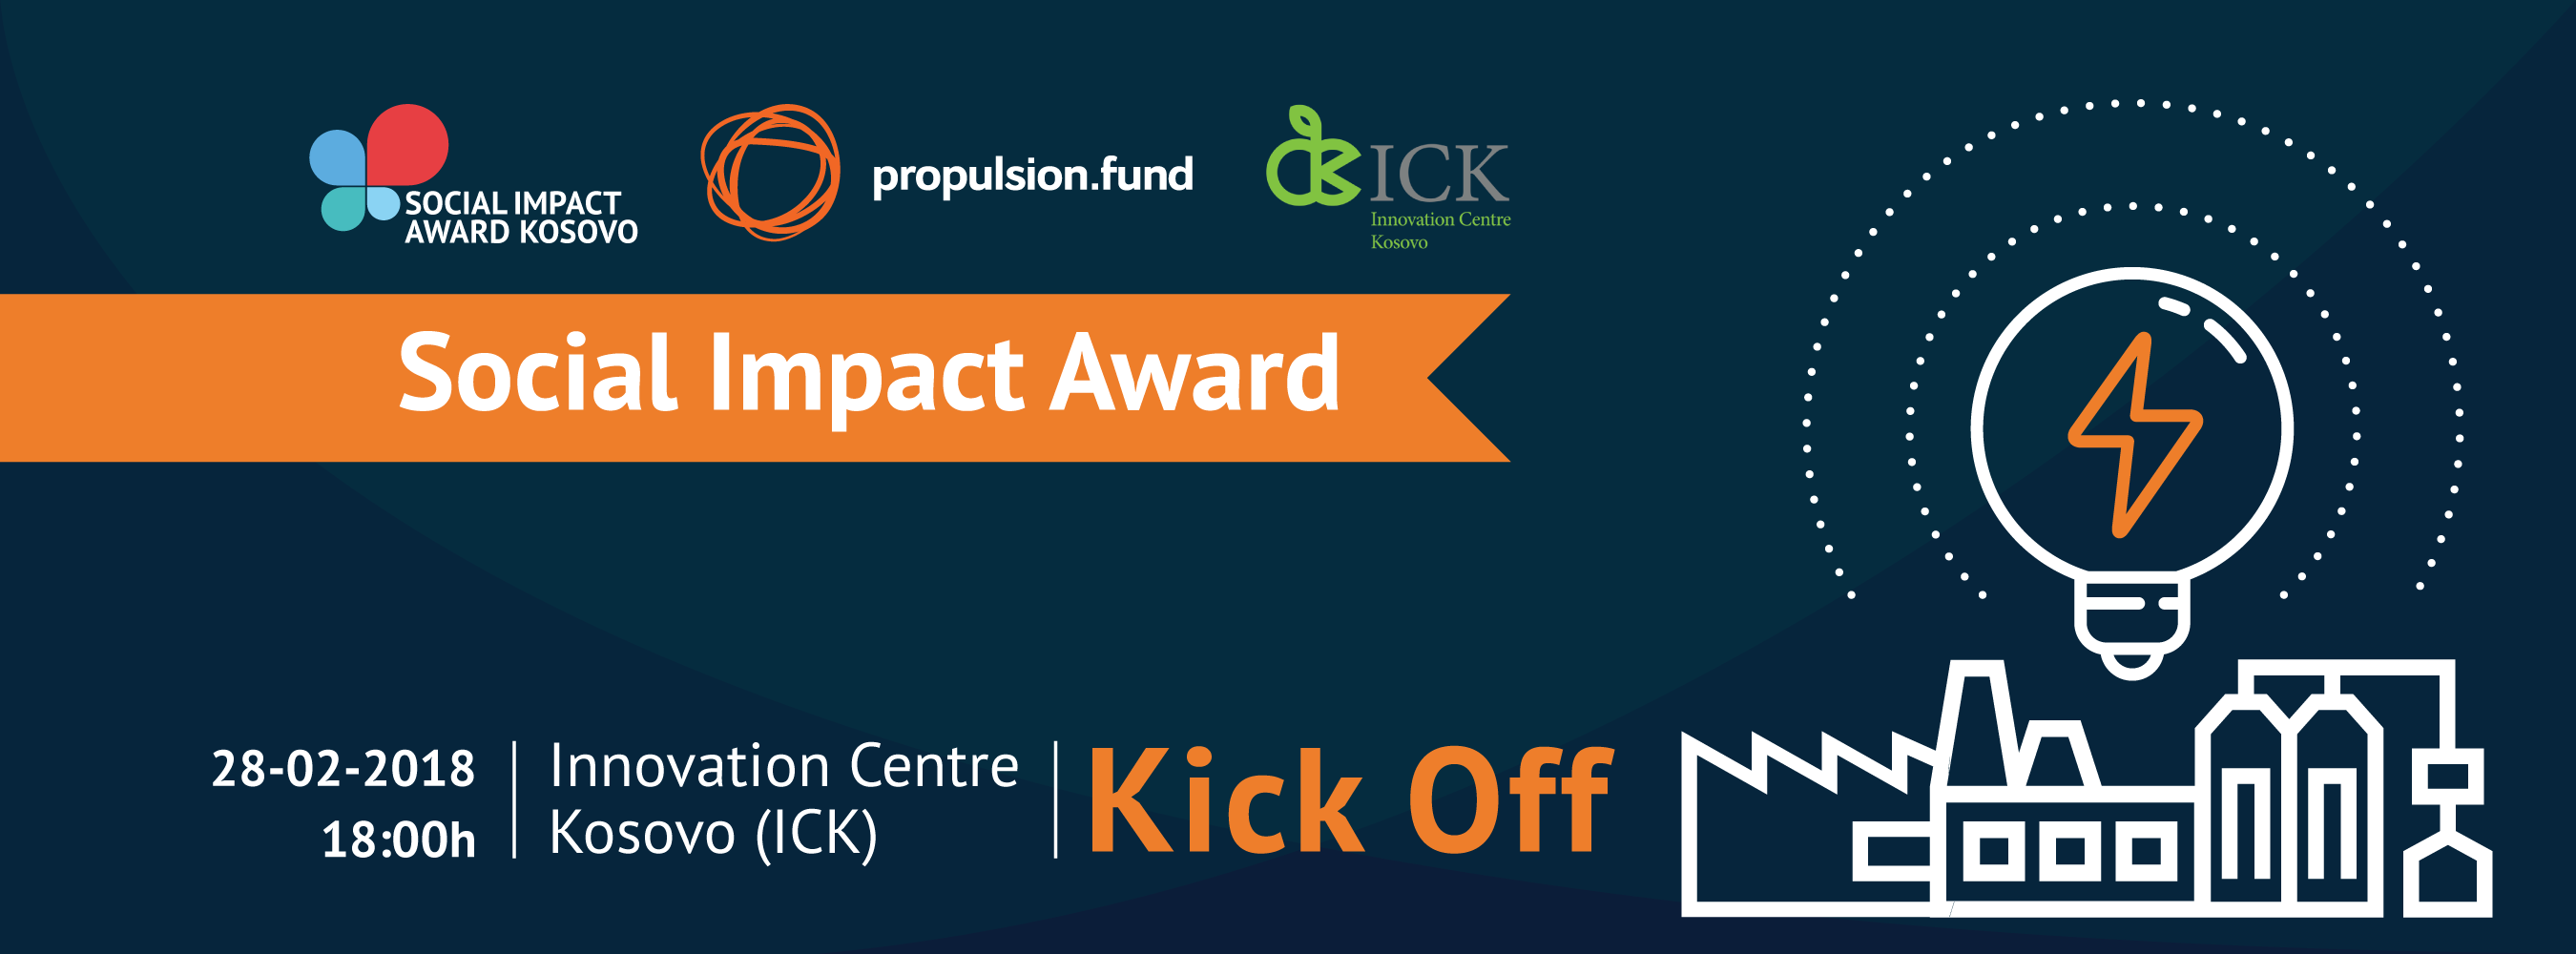 Kick Off Social Impact Award